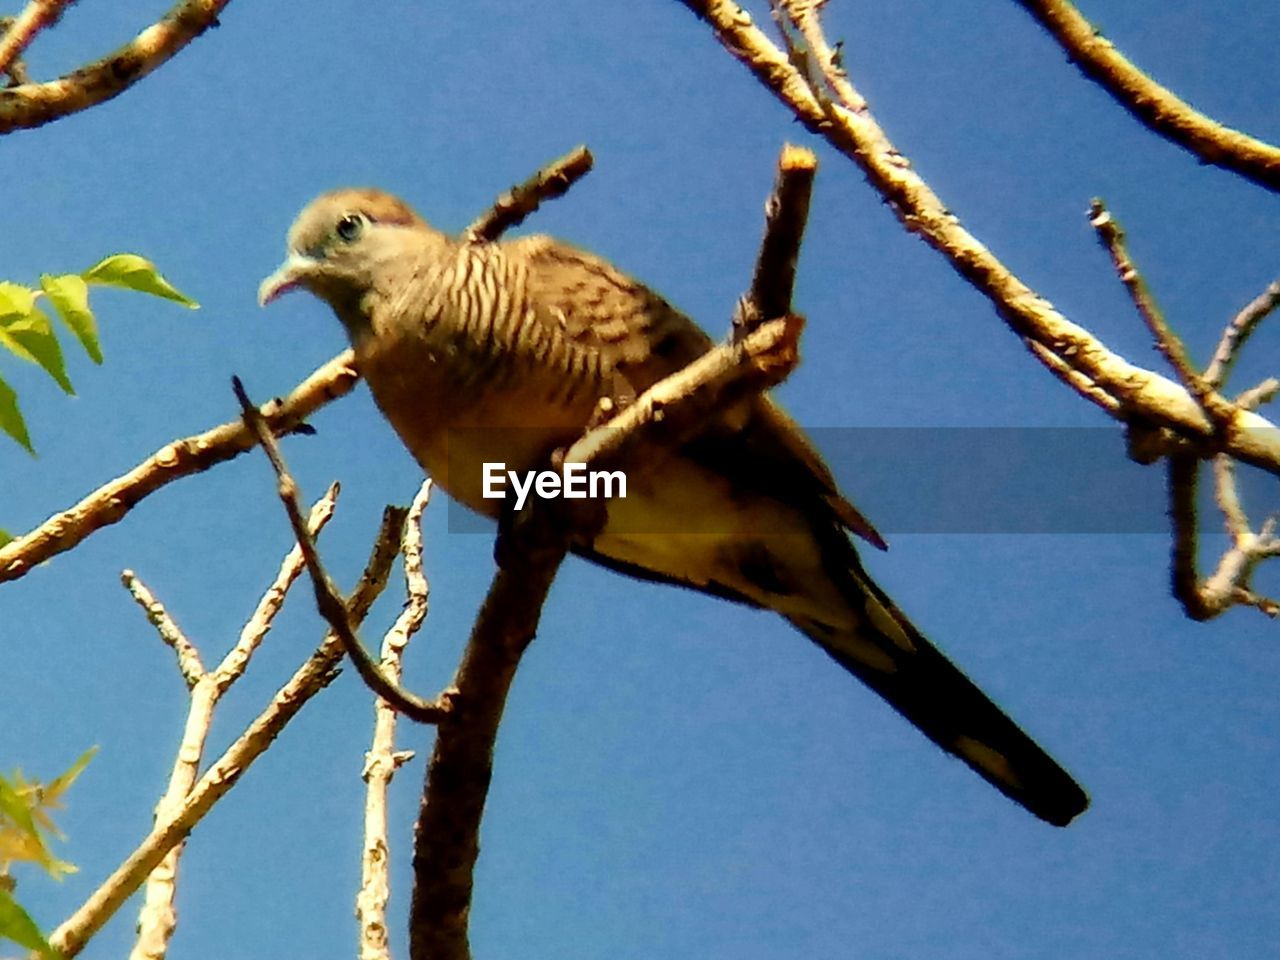 bird, animal, animal themes, animal wildlife, vertebrate, animals in the wild, one animal, perching, branch, low angle view, tree, plant, sky, nature, no people, day, clear sky, focus on foreground, outdoors